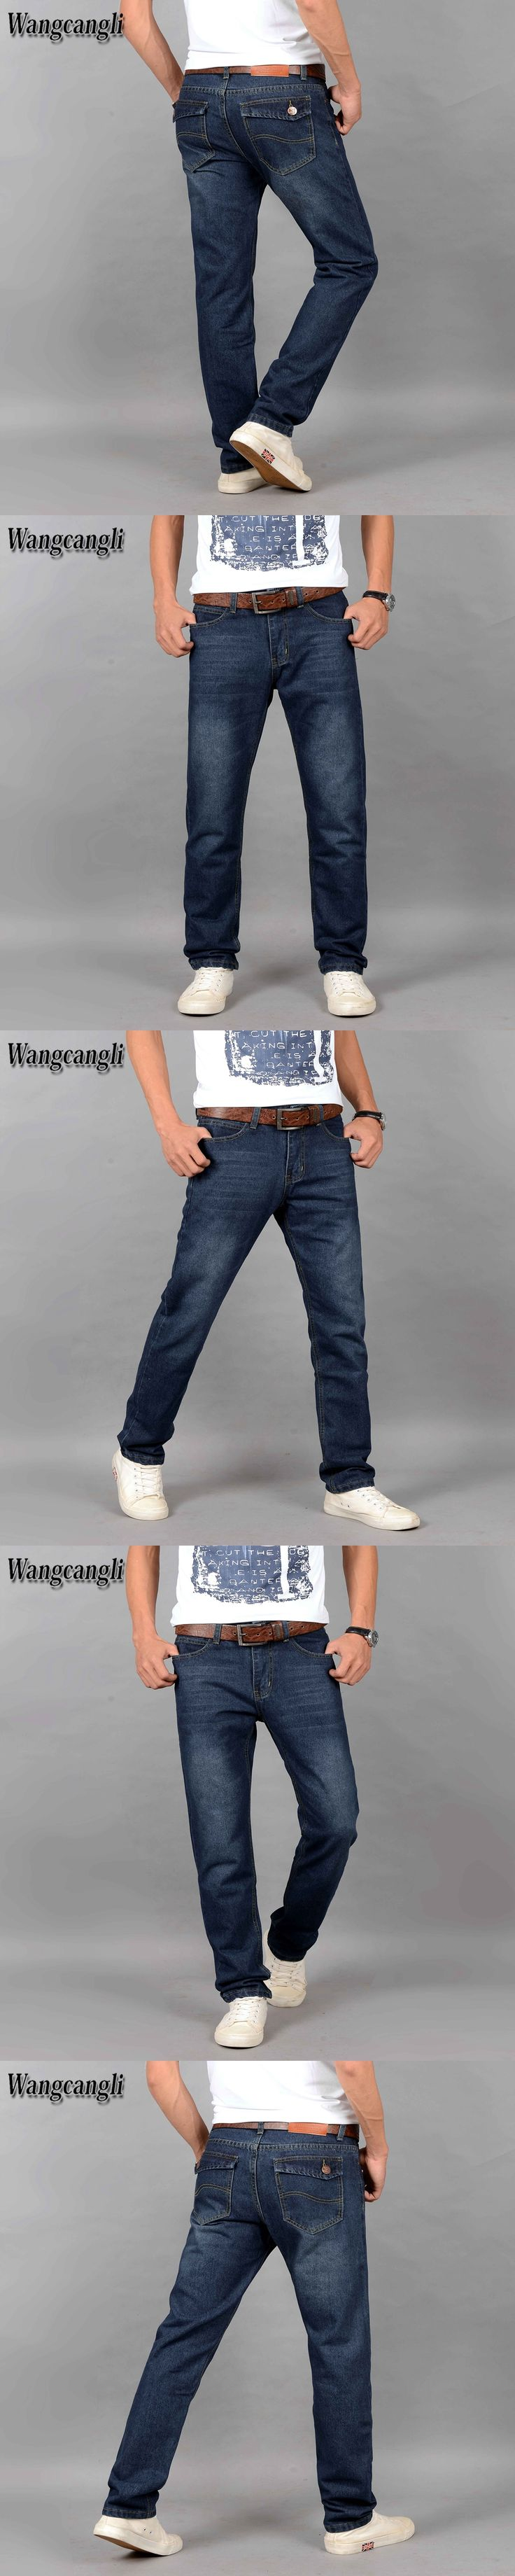 Skinny Boys Famous Brand Fashion Designer Jeans Men Straight Dark Blue Color Printed Mens Jeans Ripped Trousers Classic Jeans